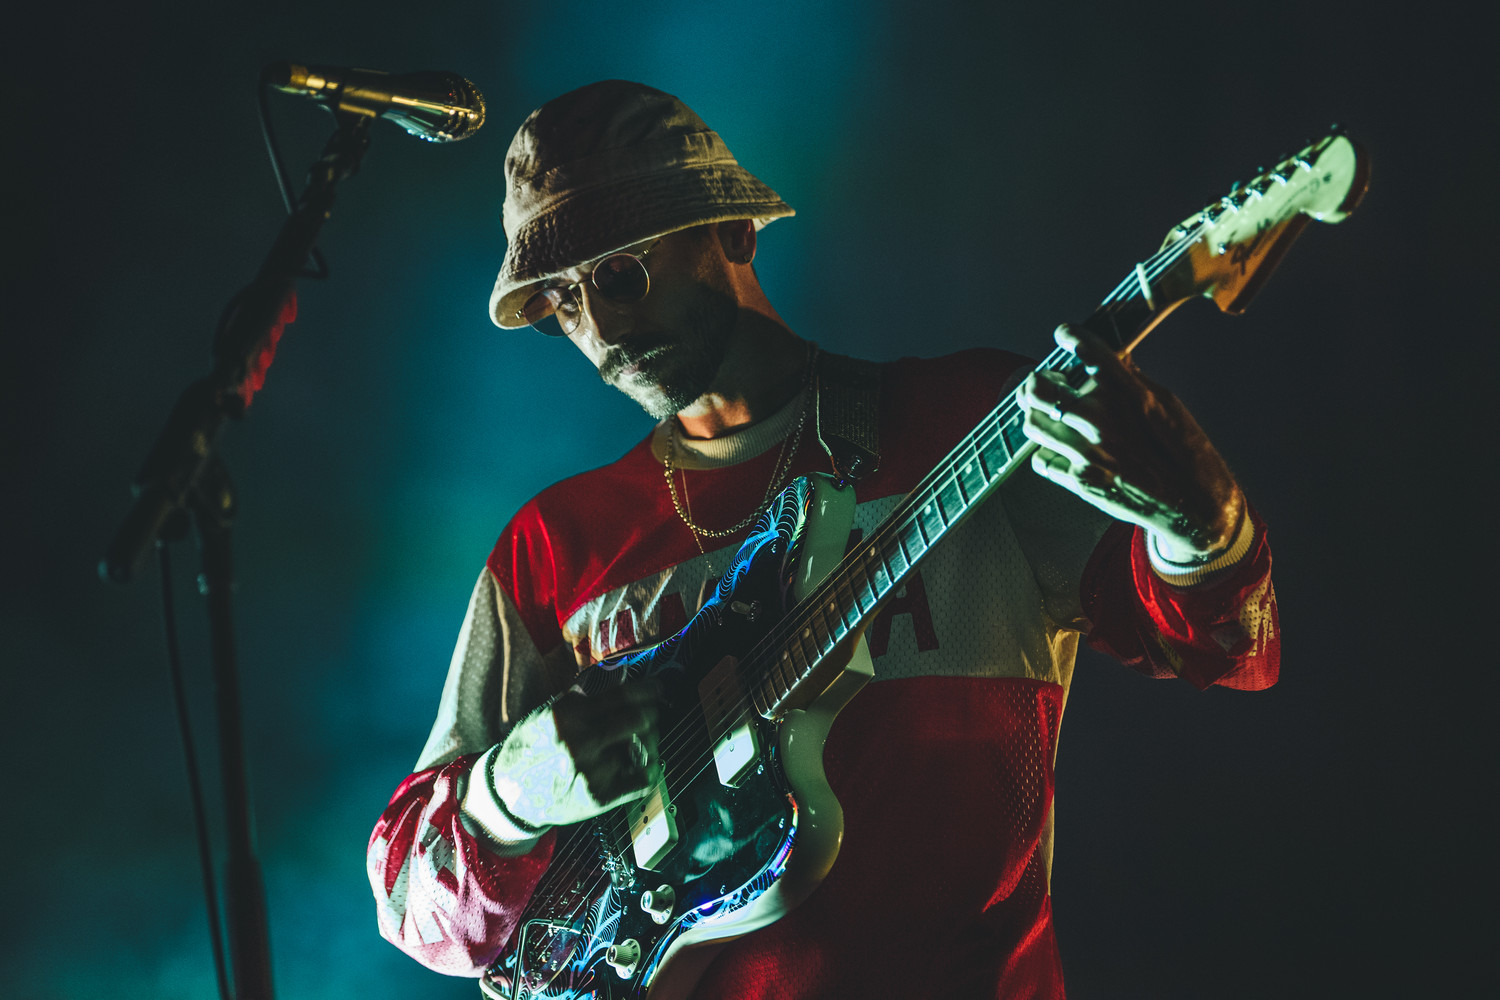 Portugal. The Man perform at Austin City Limits Music Festival, Sunday, Oct. 8, 2017.